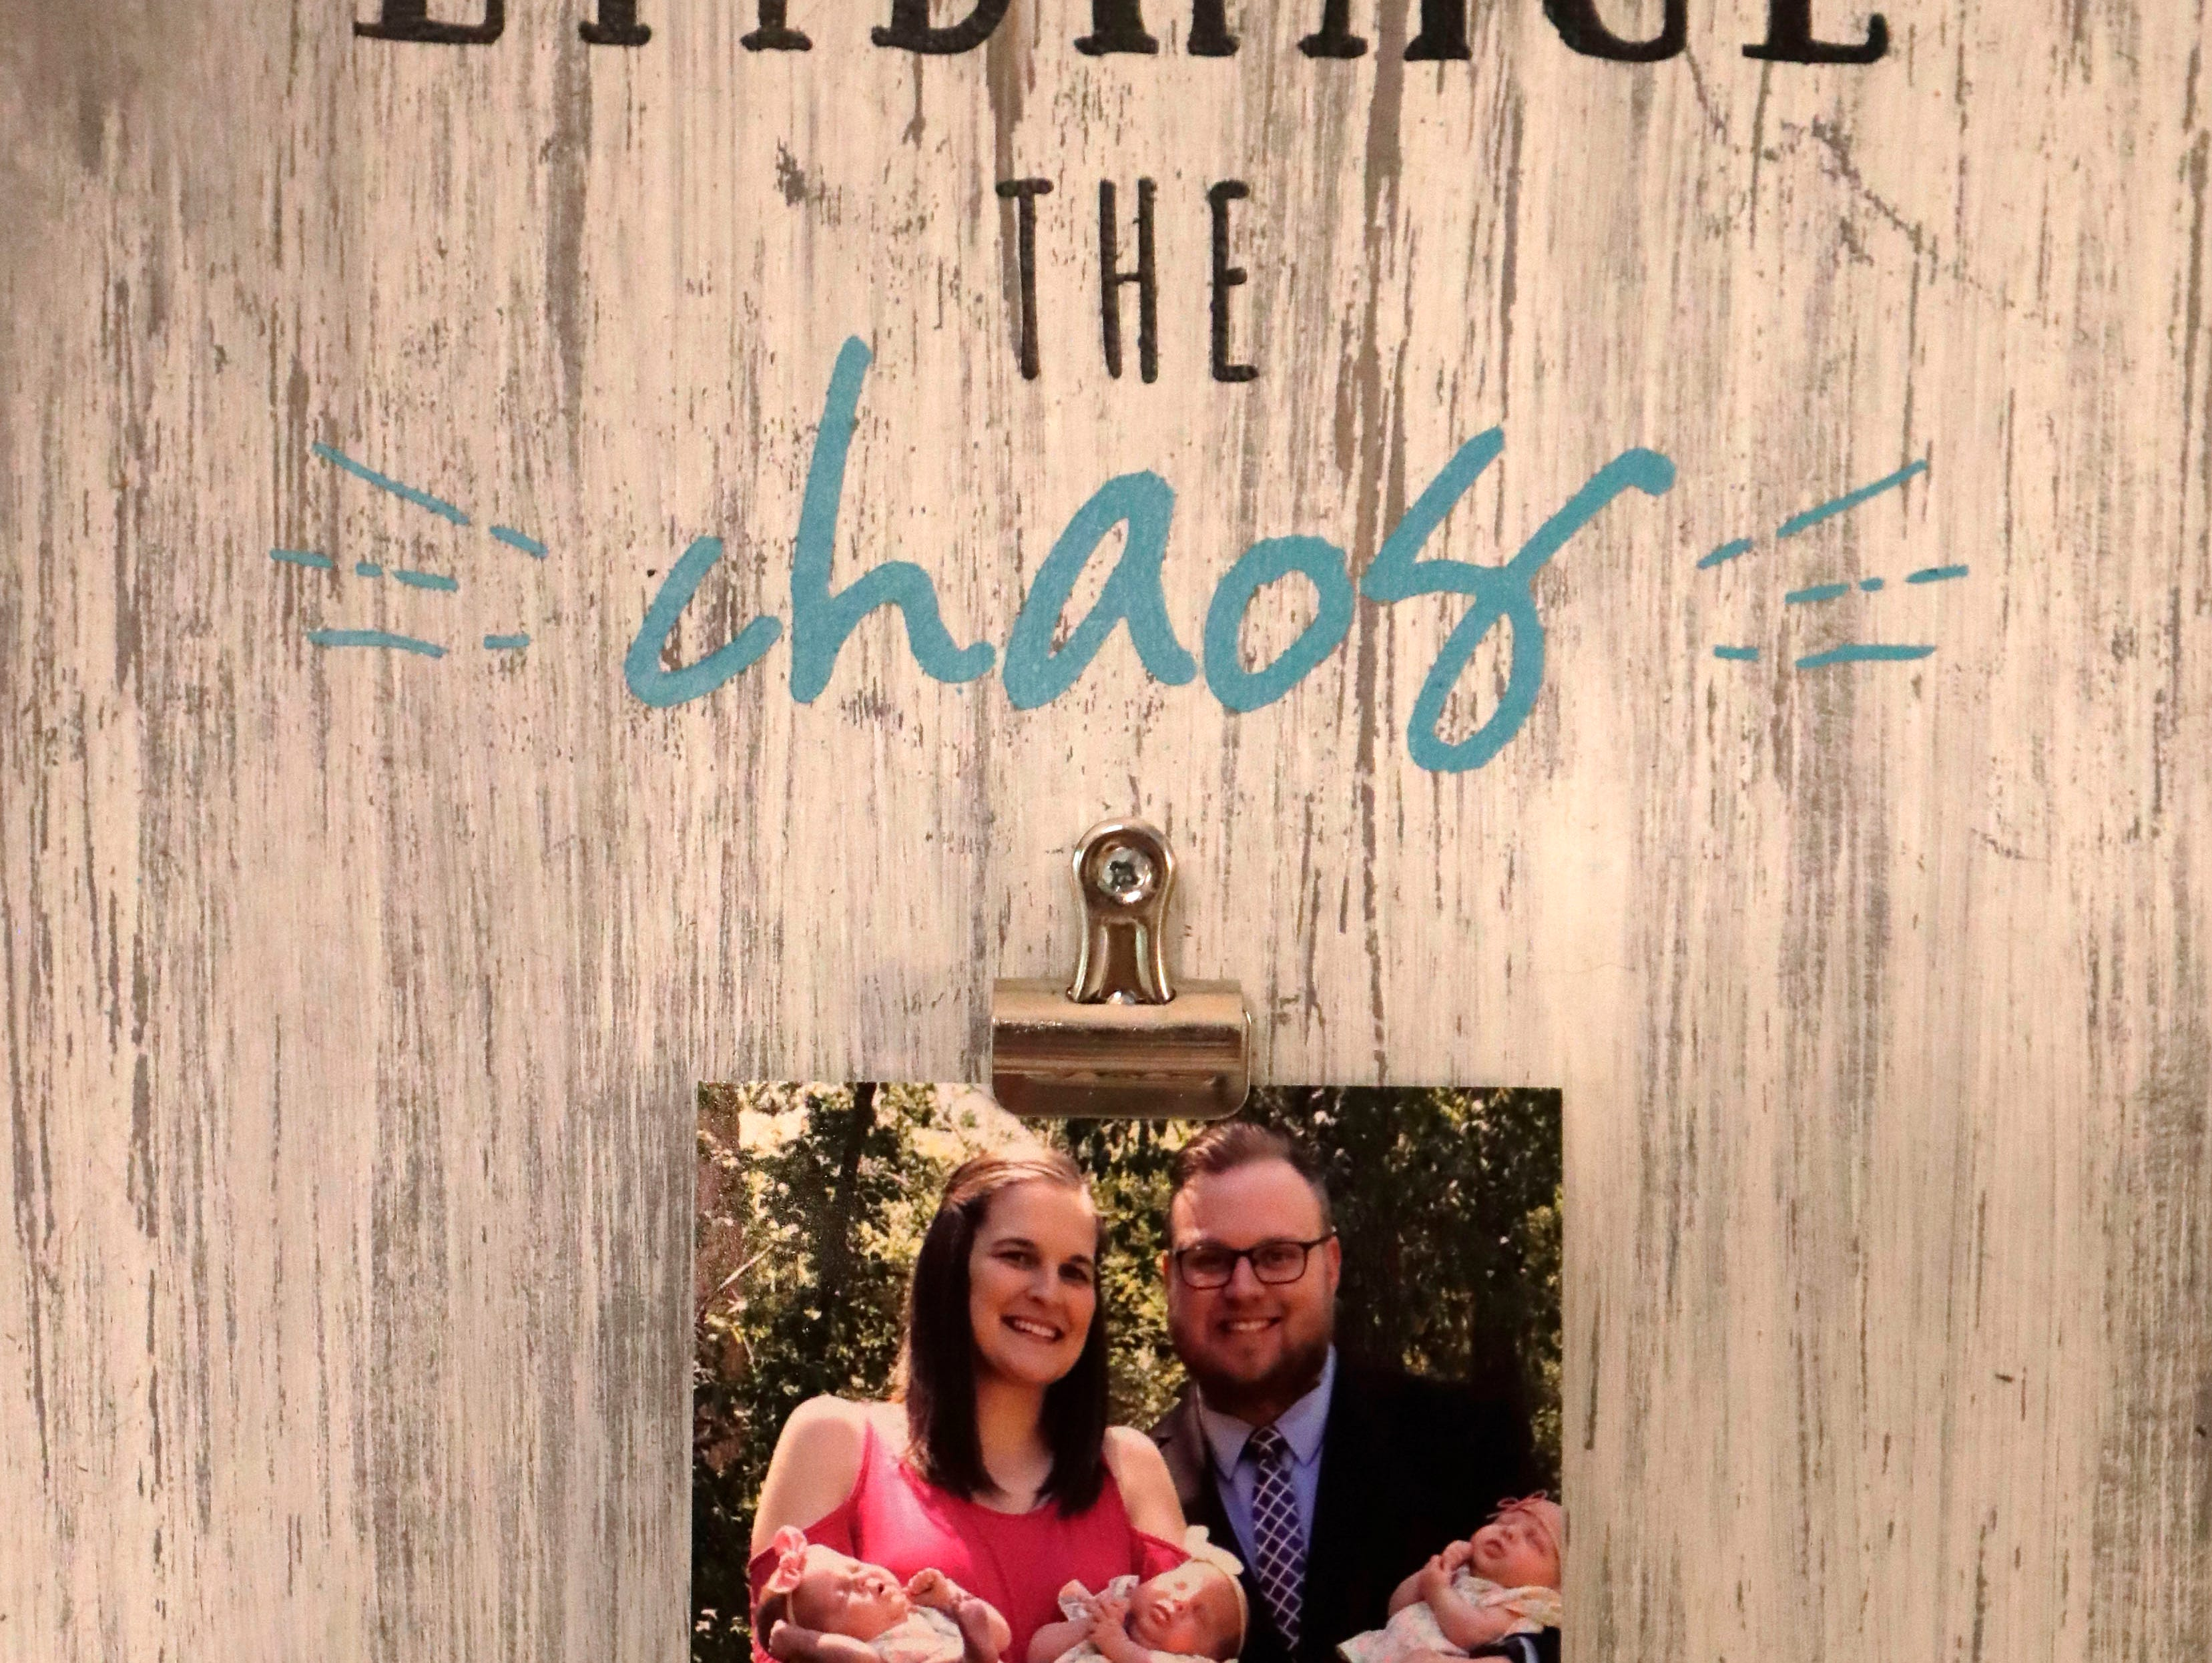 Megan Walker, a new mom to triplets, made a home decor picture holder which is a good representation of her family's new life Tuesday, May 8, 2019.